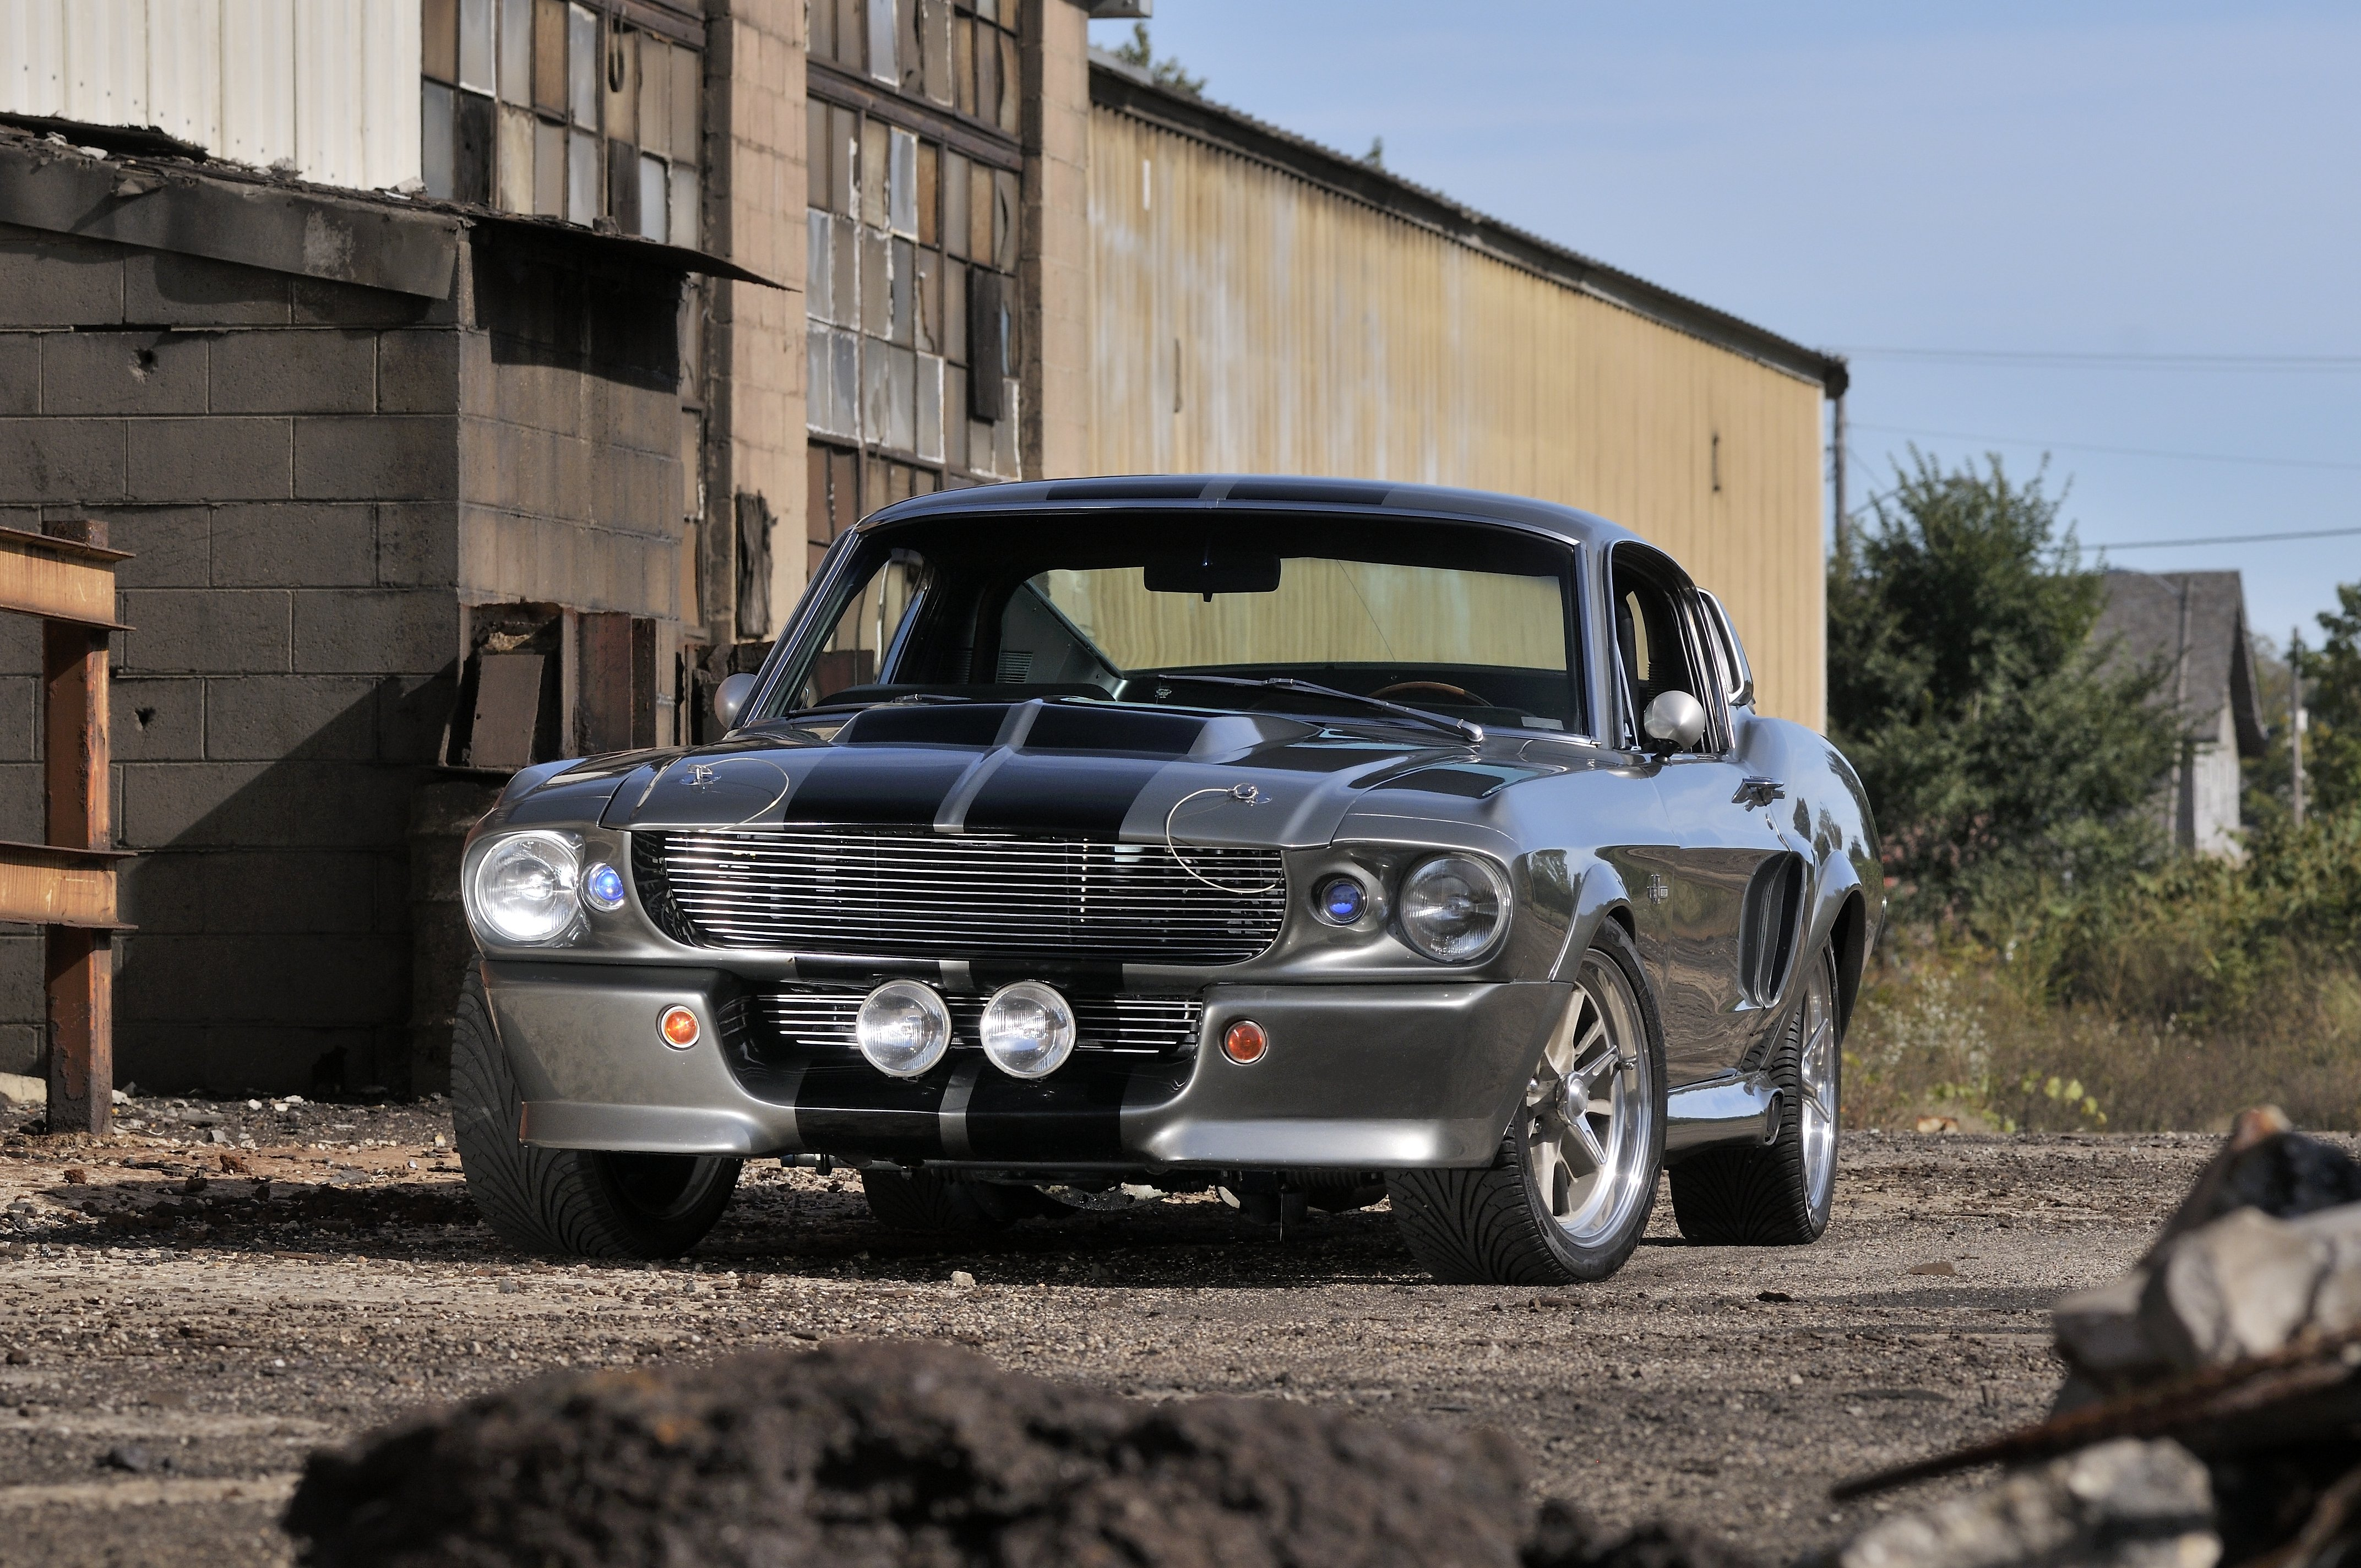 1967 ford mustang shelby gt500 eleanor gone in 60 seconds muscle street rod machine usa 4288x2848 11 wallpaper 4288x2848 653479 wallpaperup